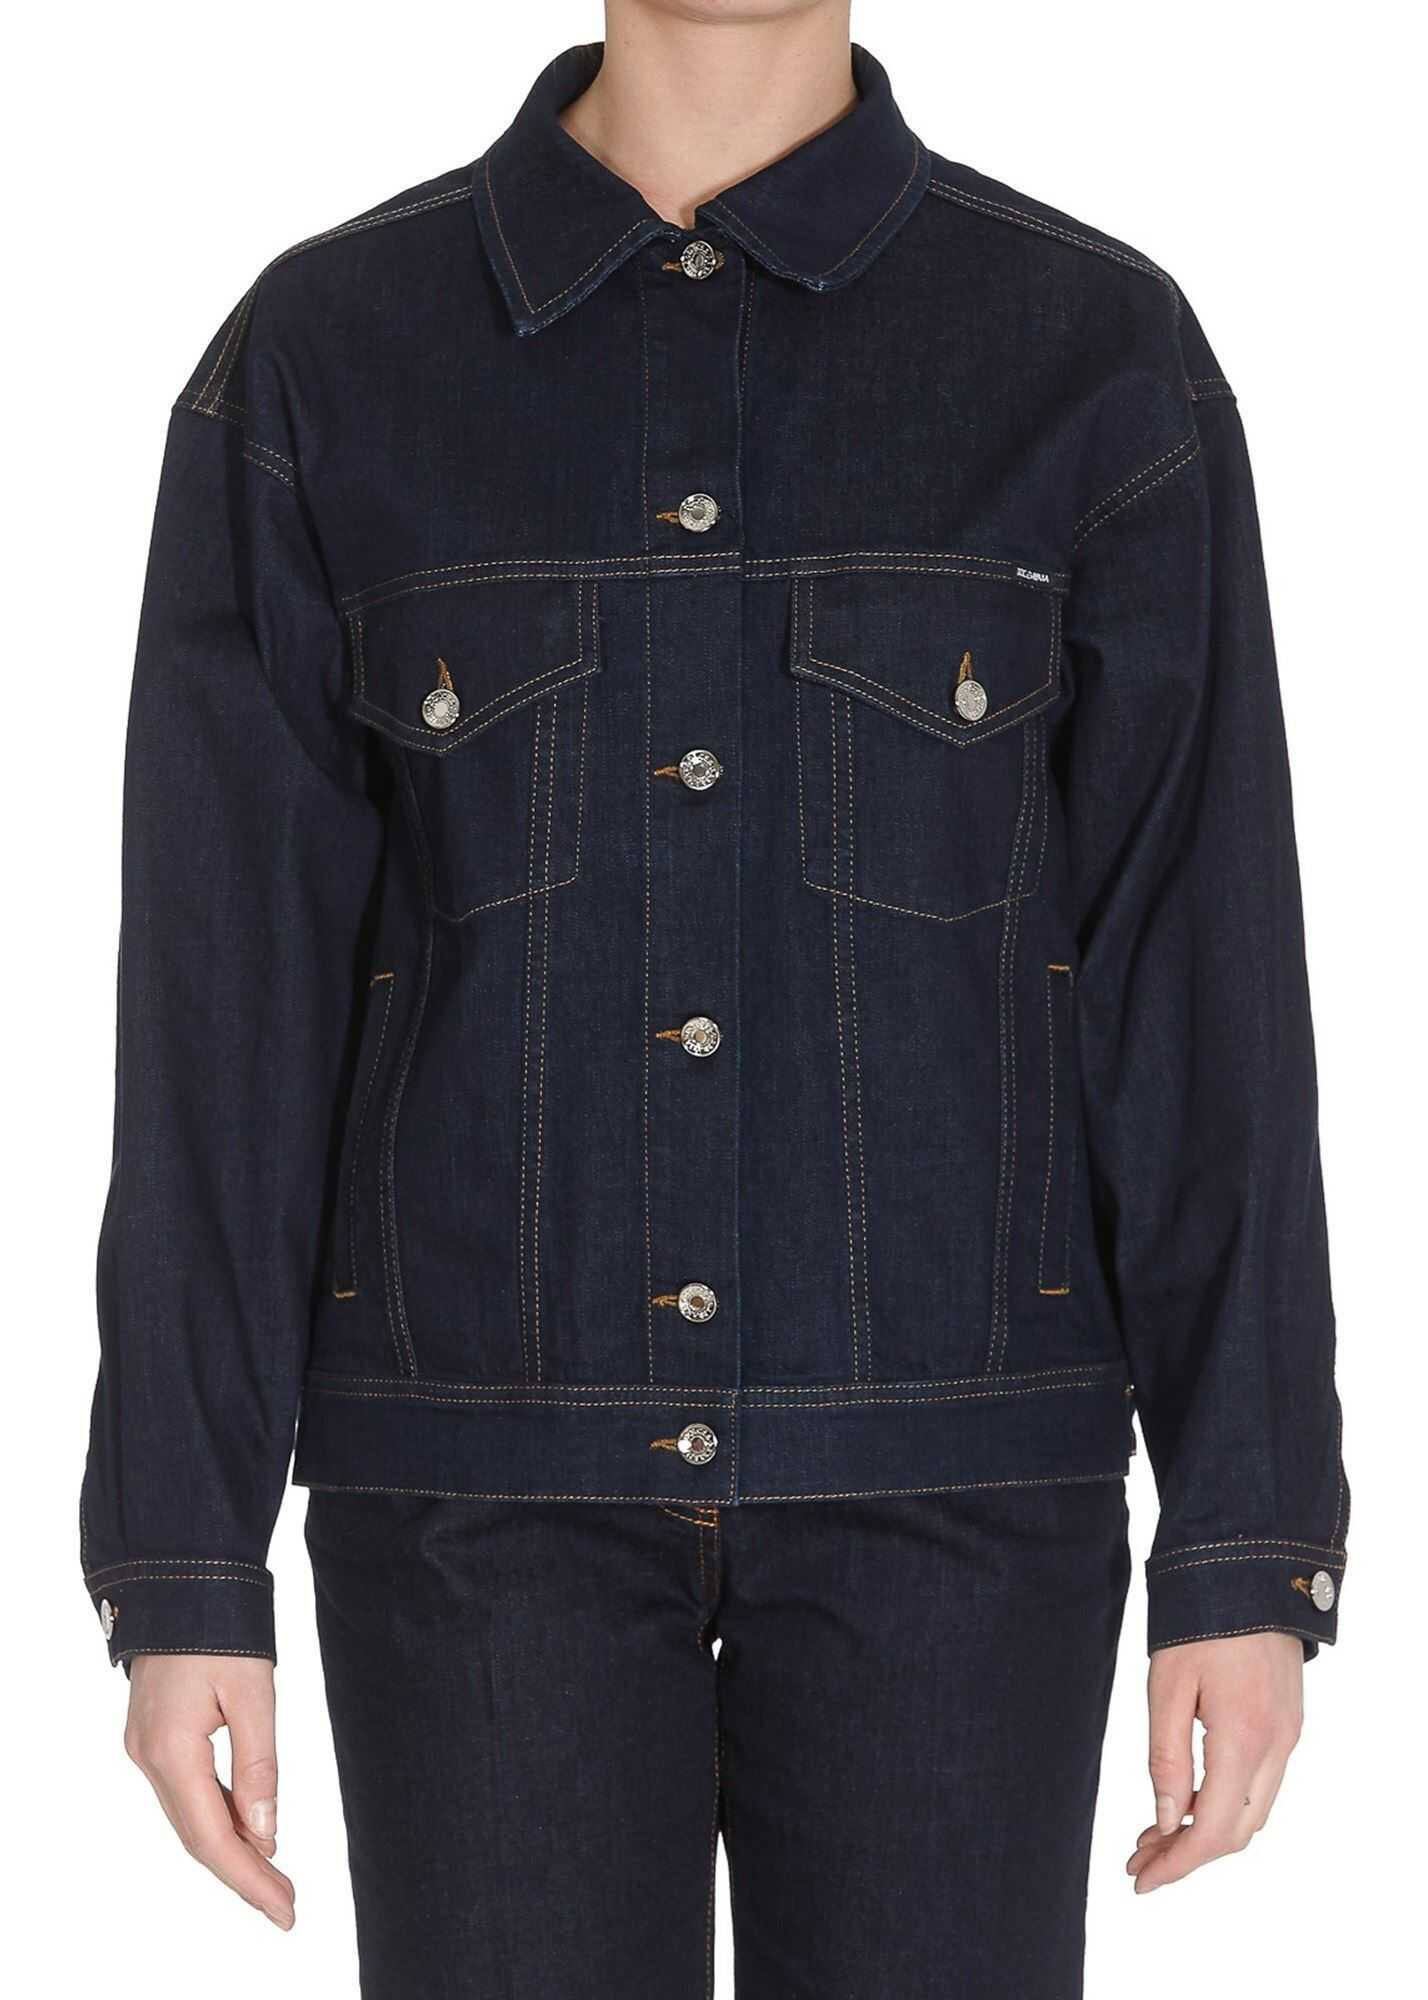 Dolce & Gabbana Denim Jacket In Dark Blue Blue